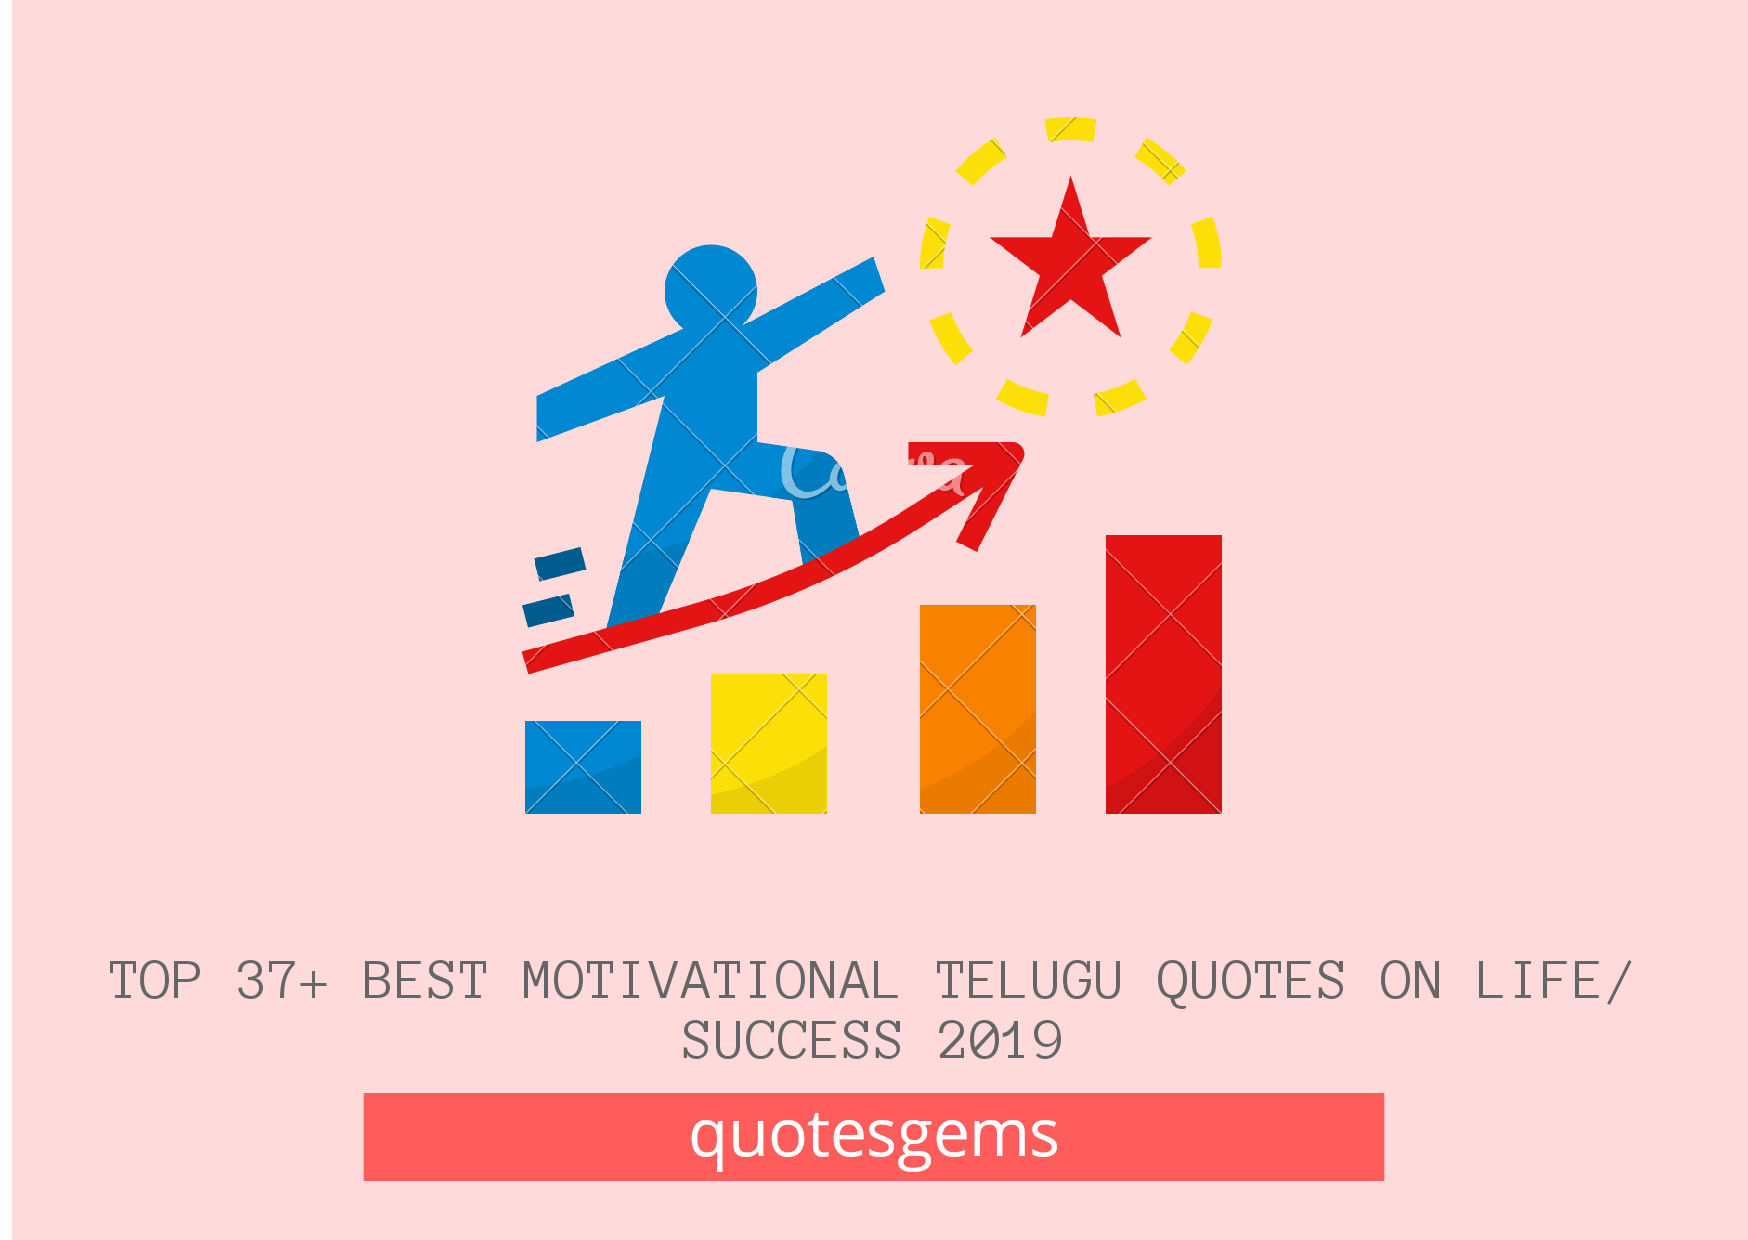 Motivational Telugu Quotes On Life And Success 2019